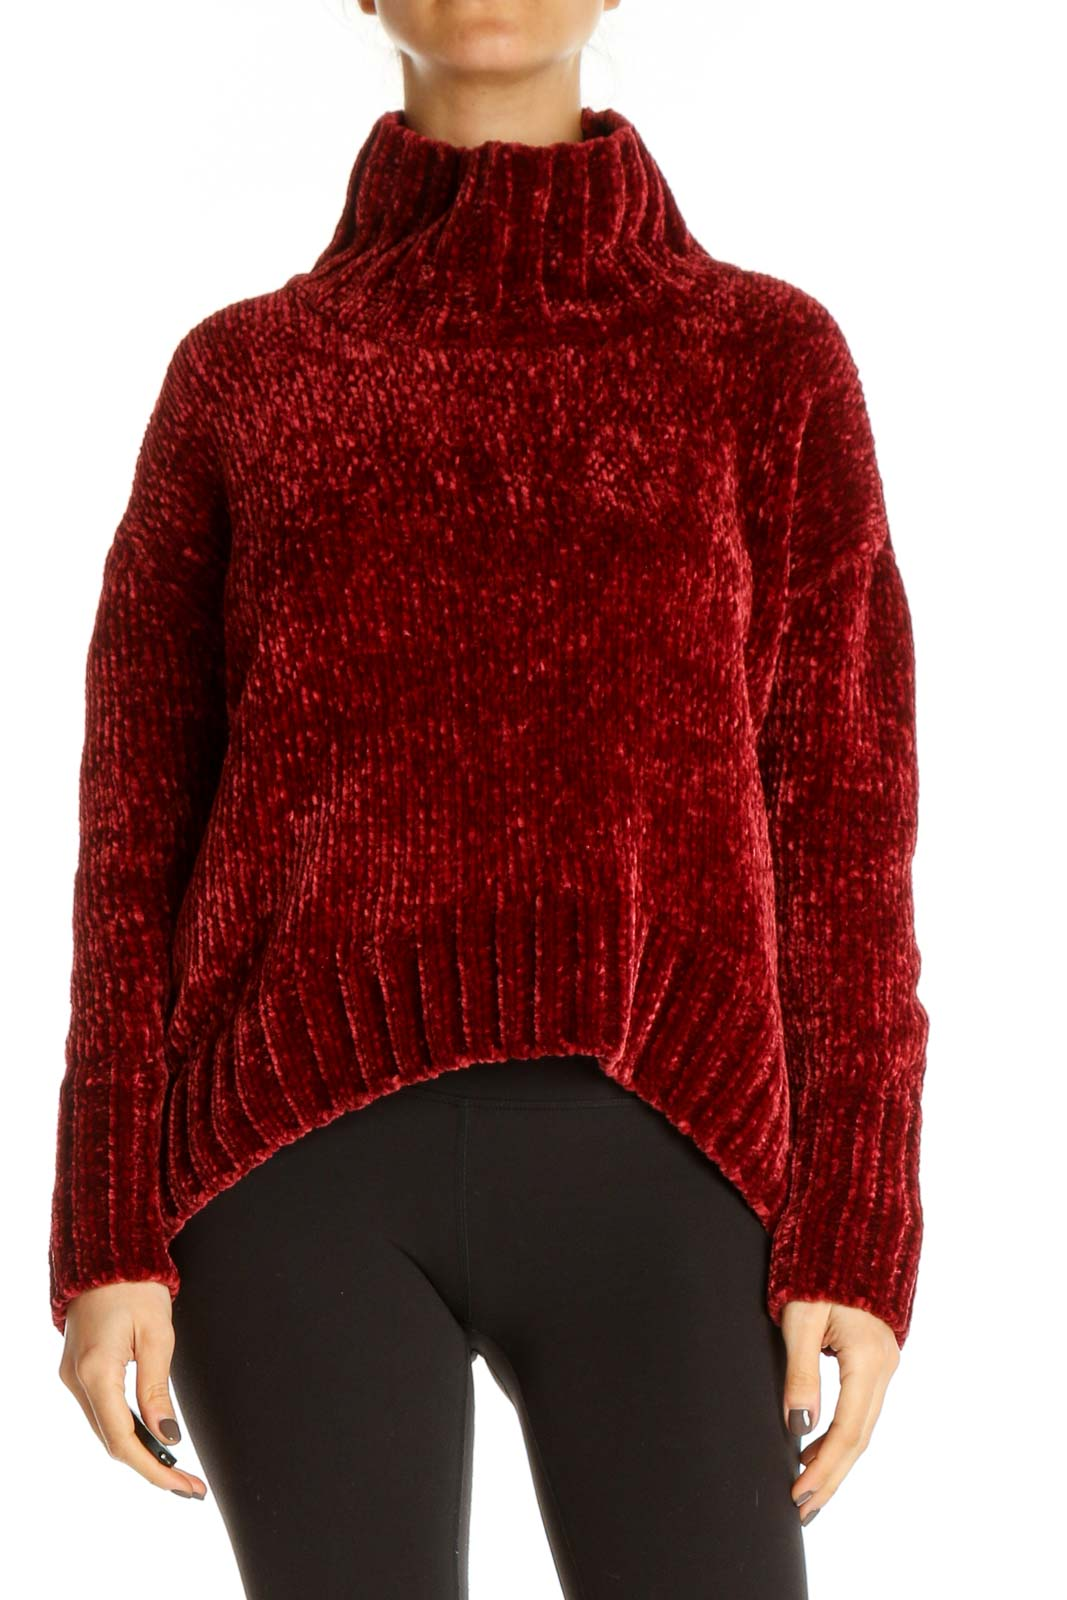 Red Textured Casual Sweater Front